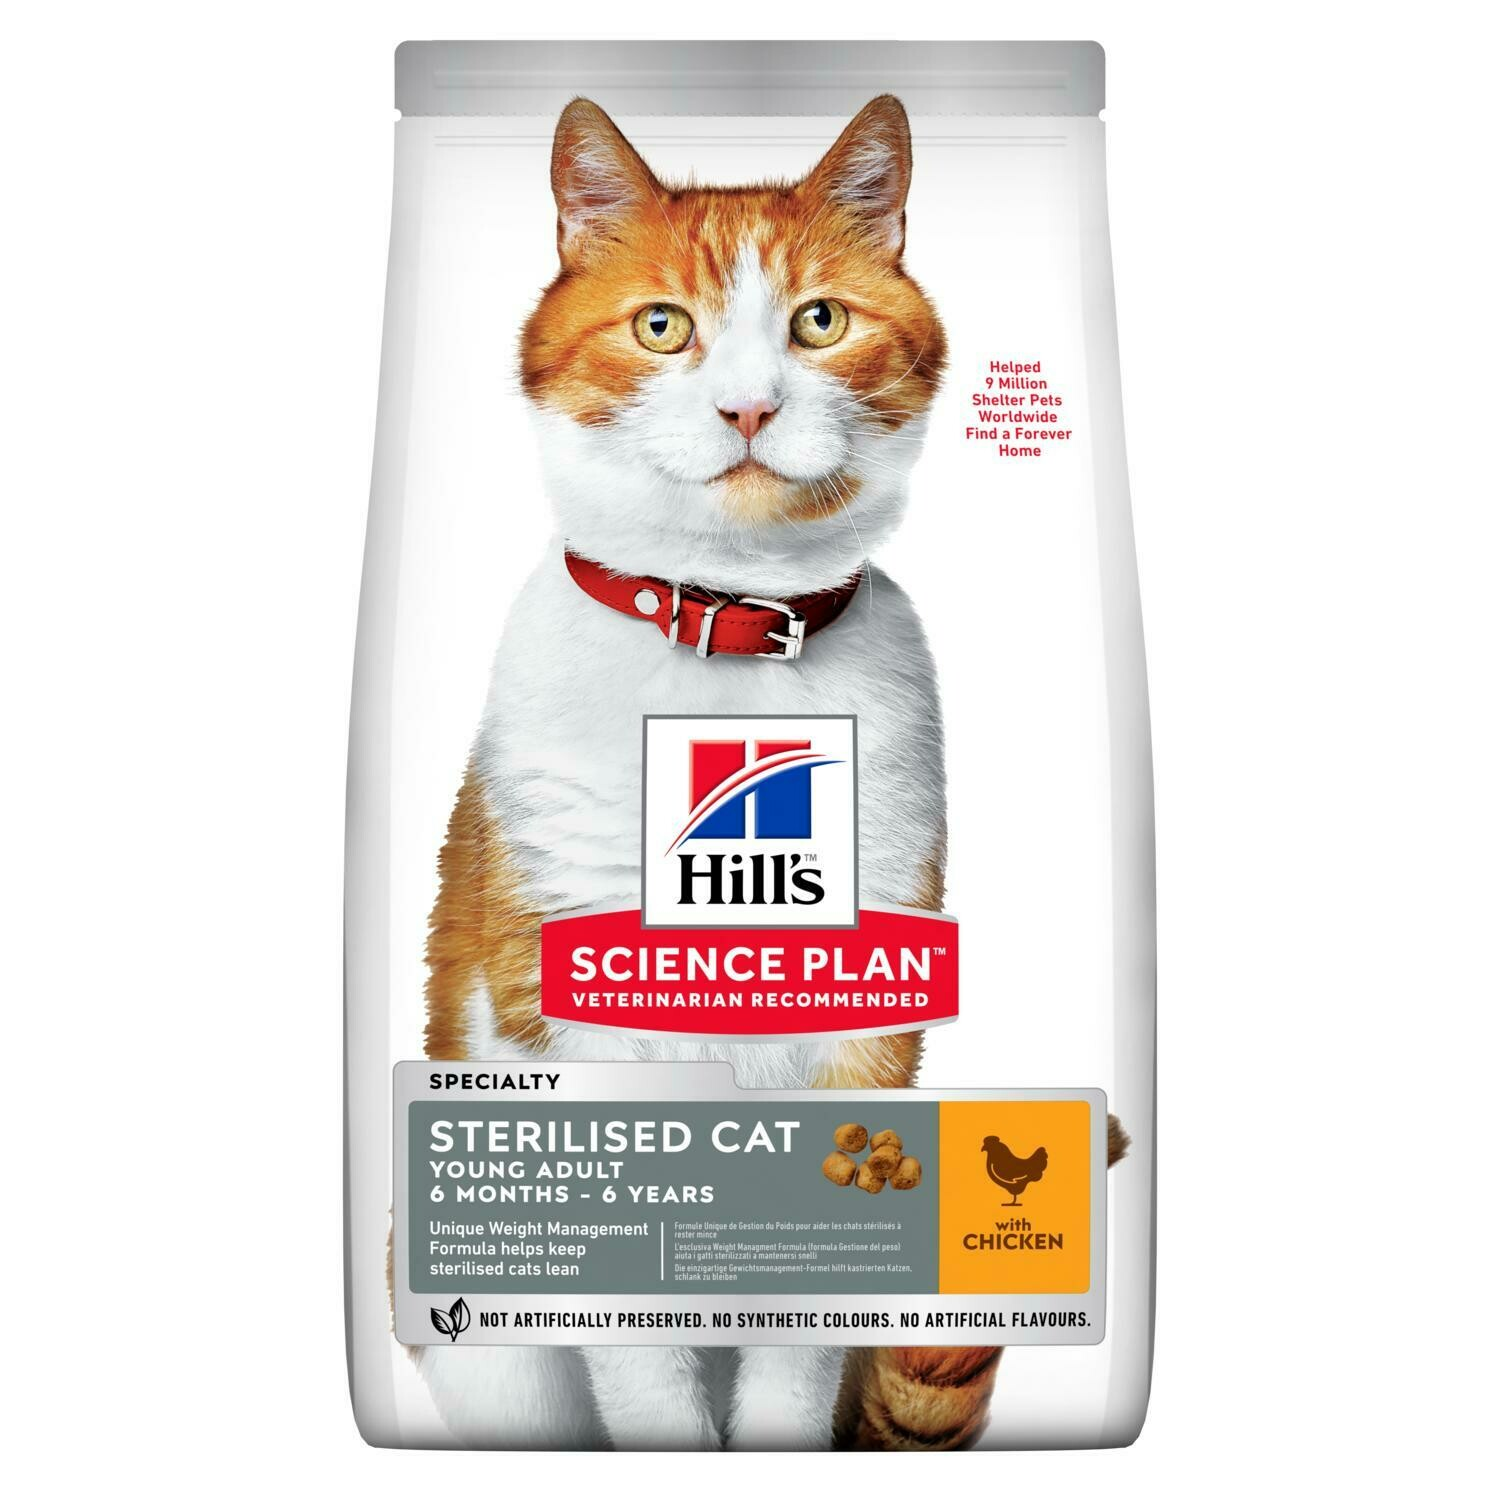 Hill's Science Plan Young Adult Sterilised Cat Dry Food Chicken Flavour